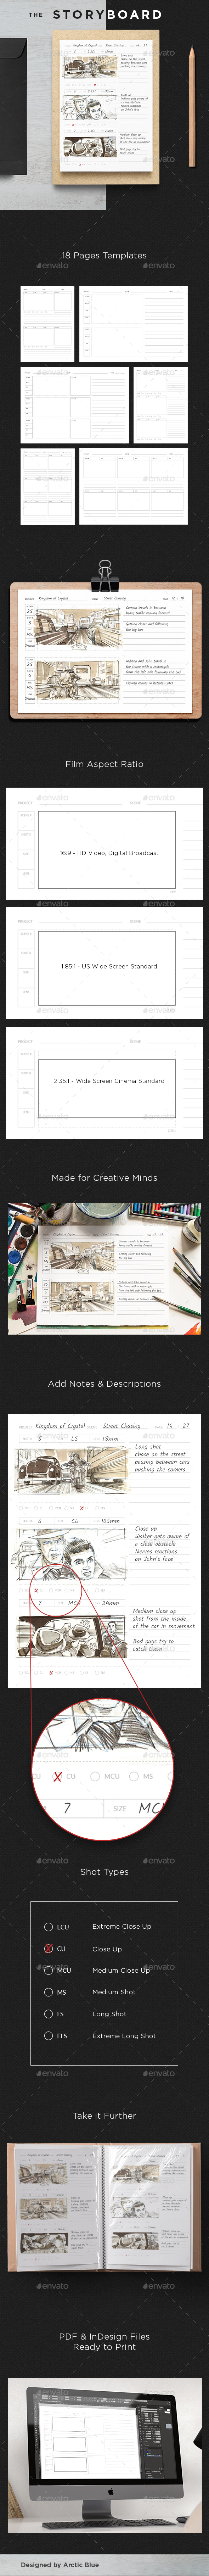 GraphicRiver The Storyboard 21133337